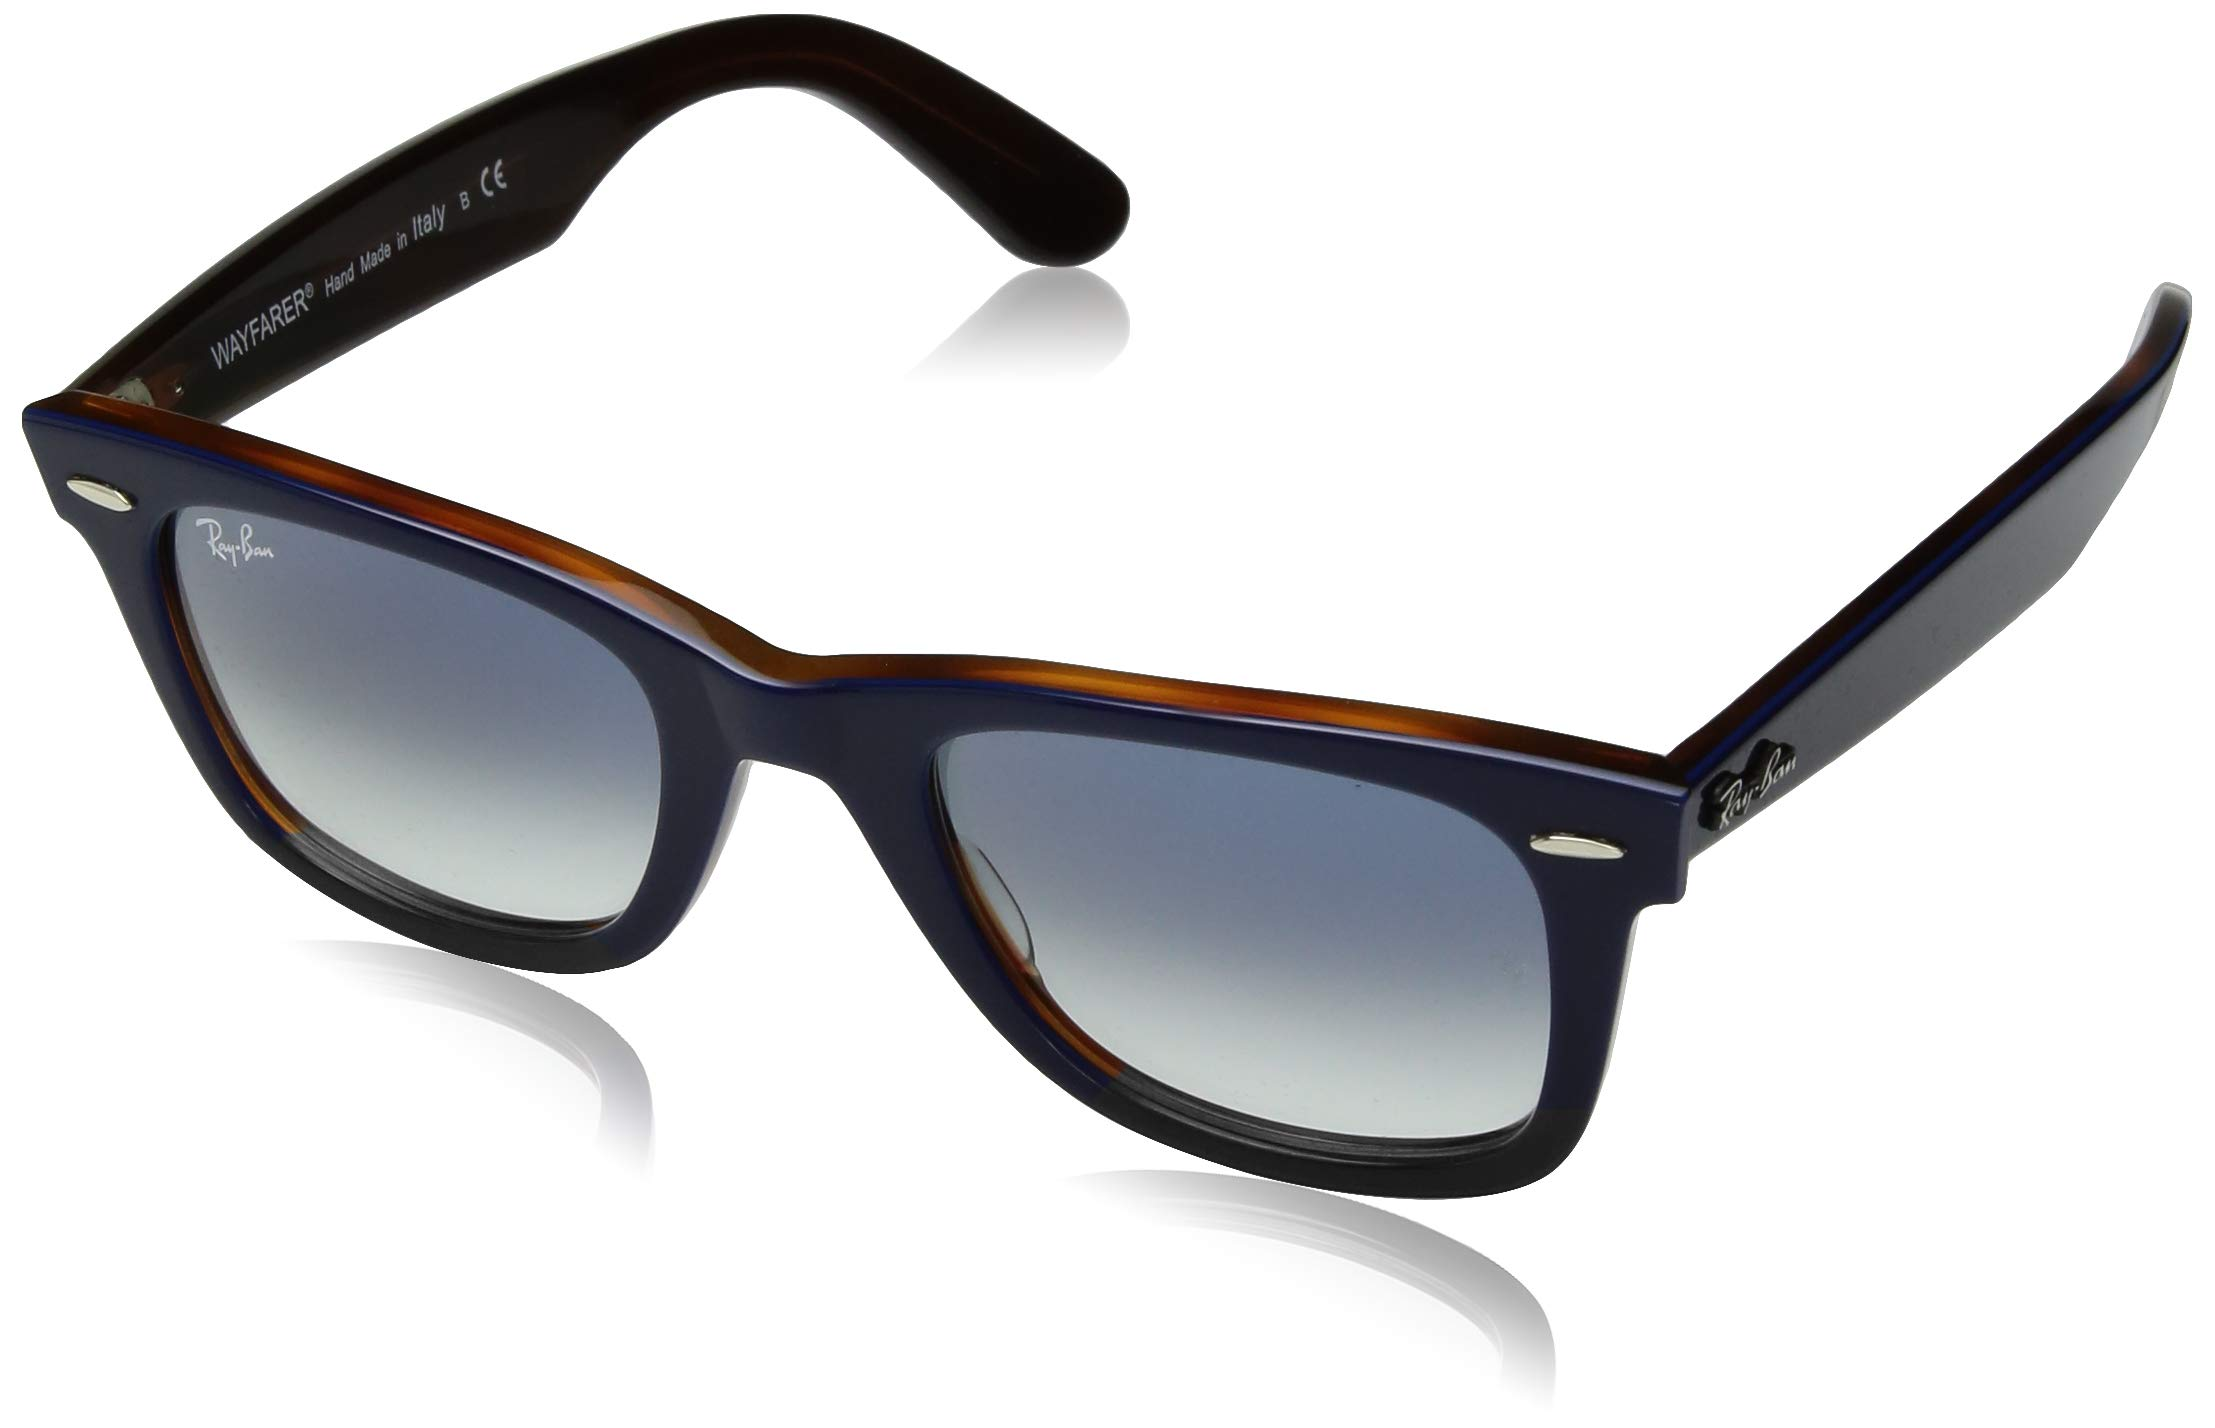 Ray-Ban RB2140 Wayfarer Sunglasses, Blue On Red Havana/Blue Gradient, 50 mm by RAY-BAN